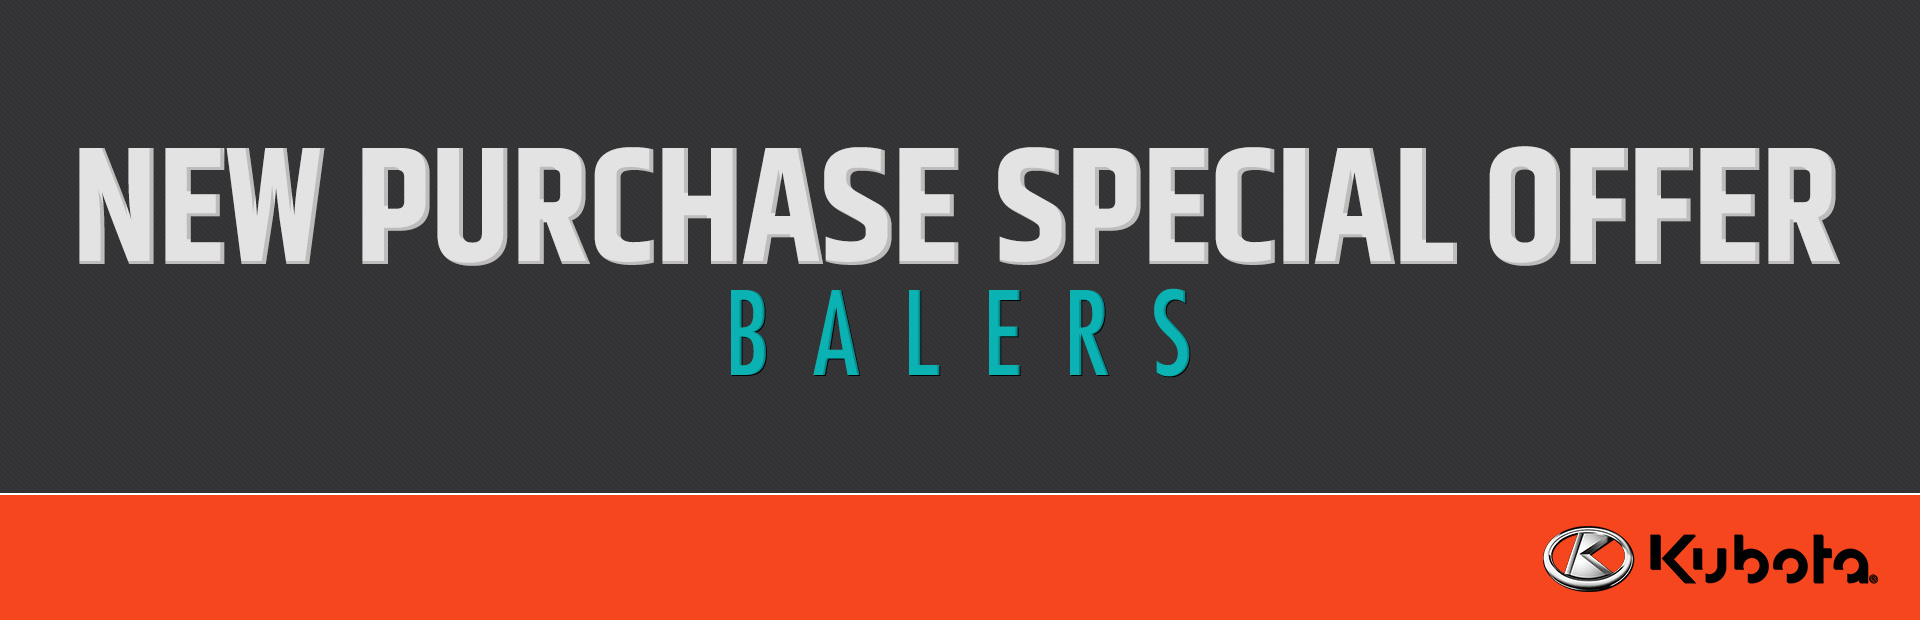 Kubota: New Purchase Special Offer - Balers